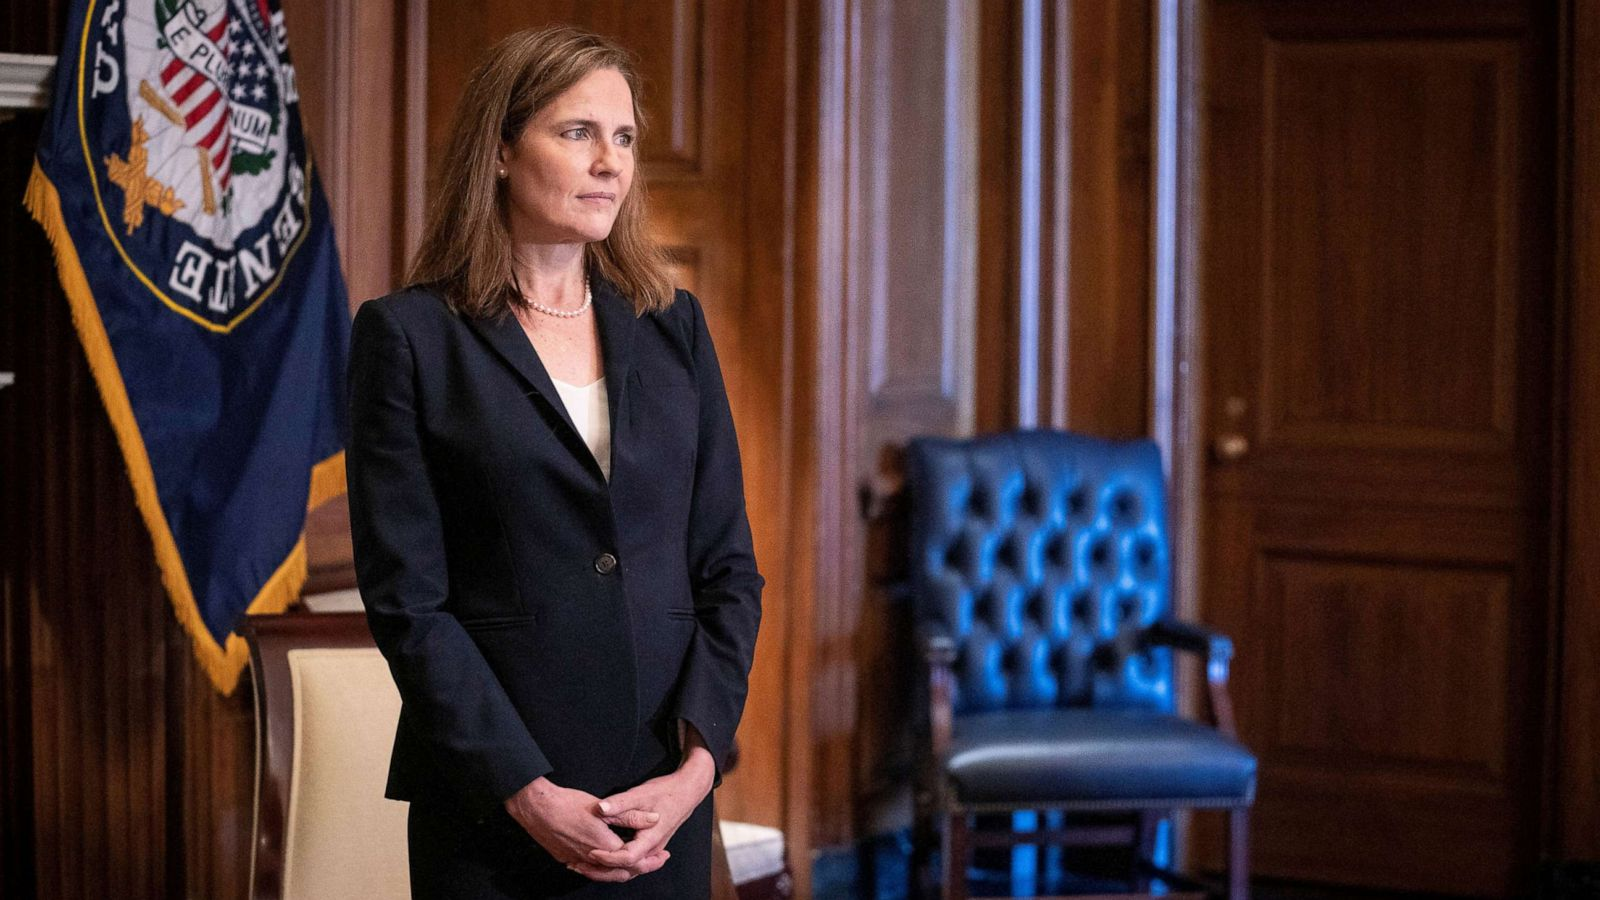 U.S. Senate panel votes on Amy Coney Barrett's Supreme Court nomination